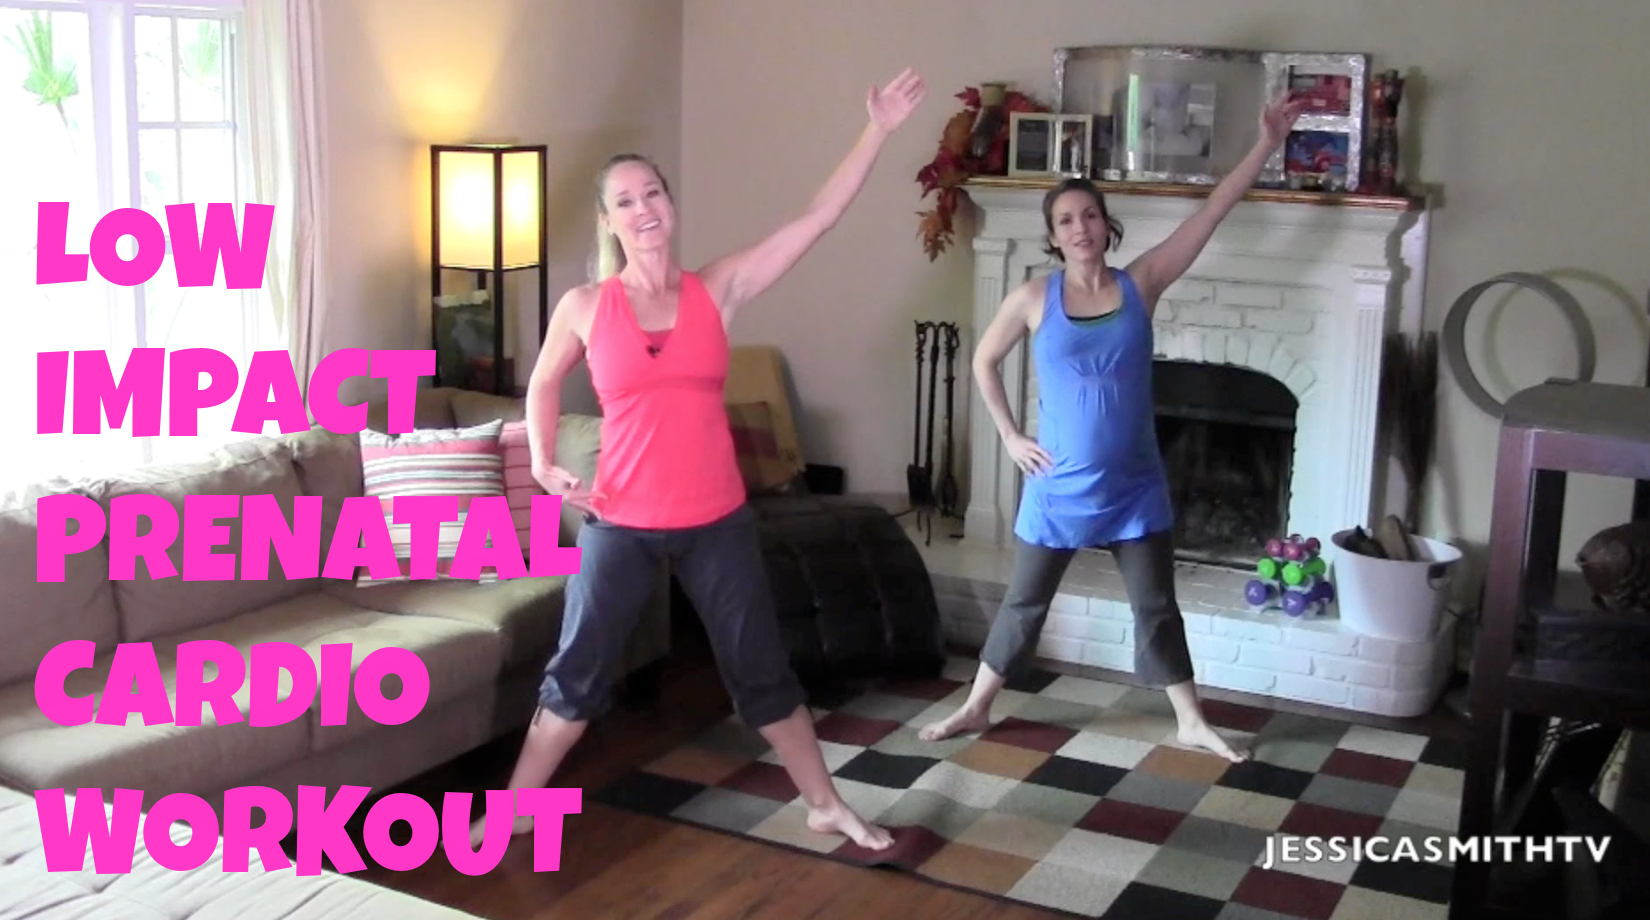 Workouts For Pregnancy Working Out While Pregnant Exercise Women Fitness